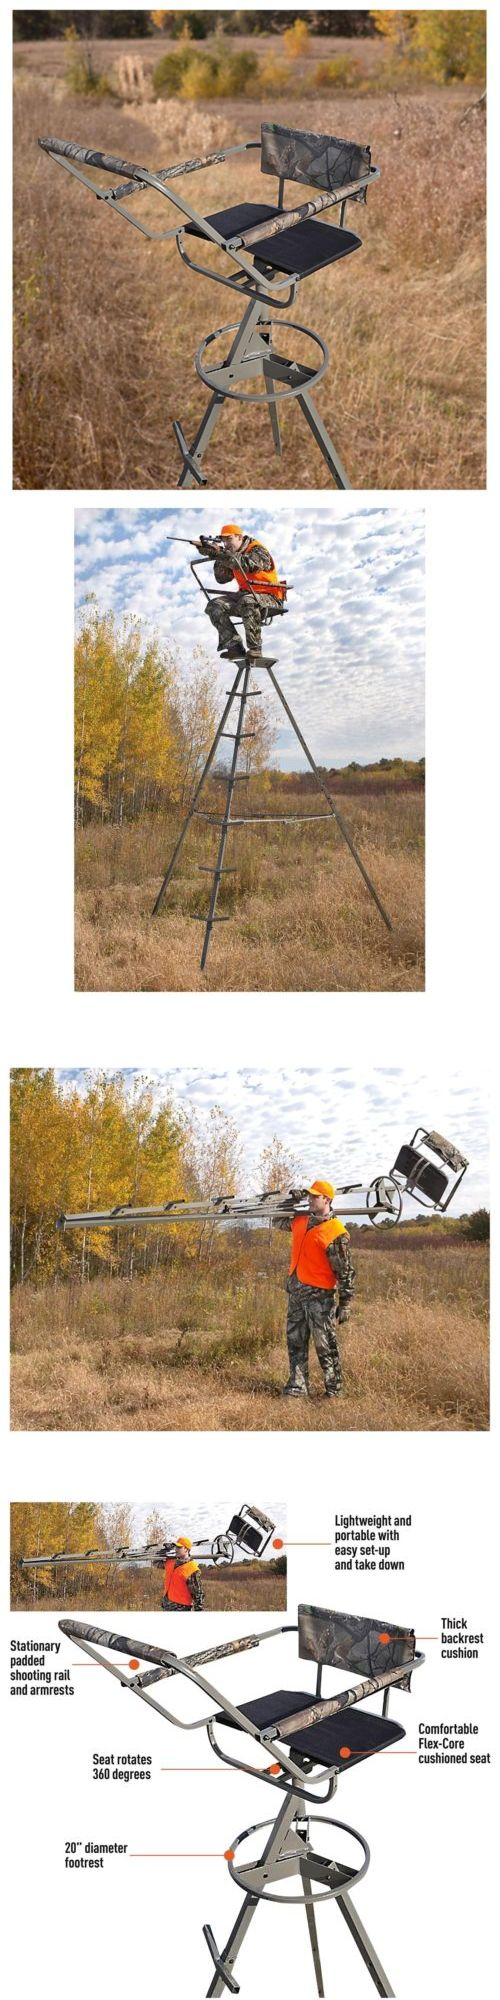 Tree Stands 52508: 12 Tripod Tree Stand 360° Big Game Hunter Deer Turkey Camo Ladder Shooting -> BUY IT NOW ONLY: $149.24 on eBay!